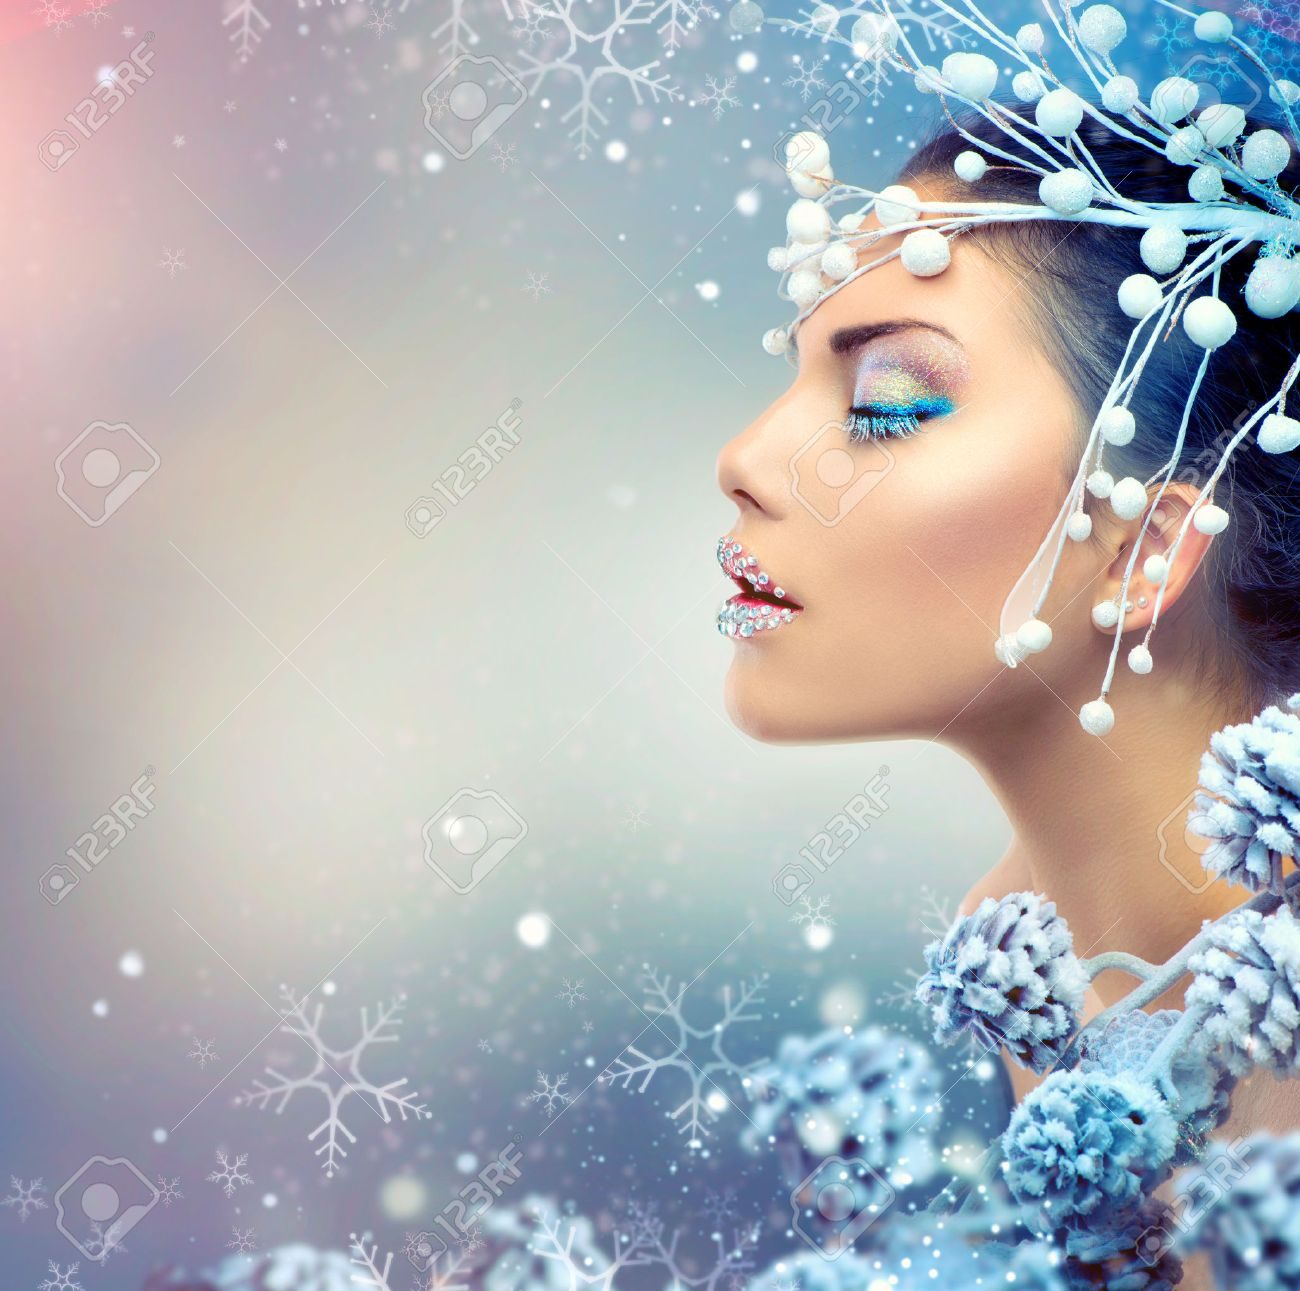 Winter Beauty Woman Christmas Girl Makeup Stock Photo Picture And